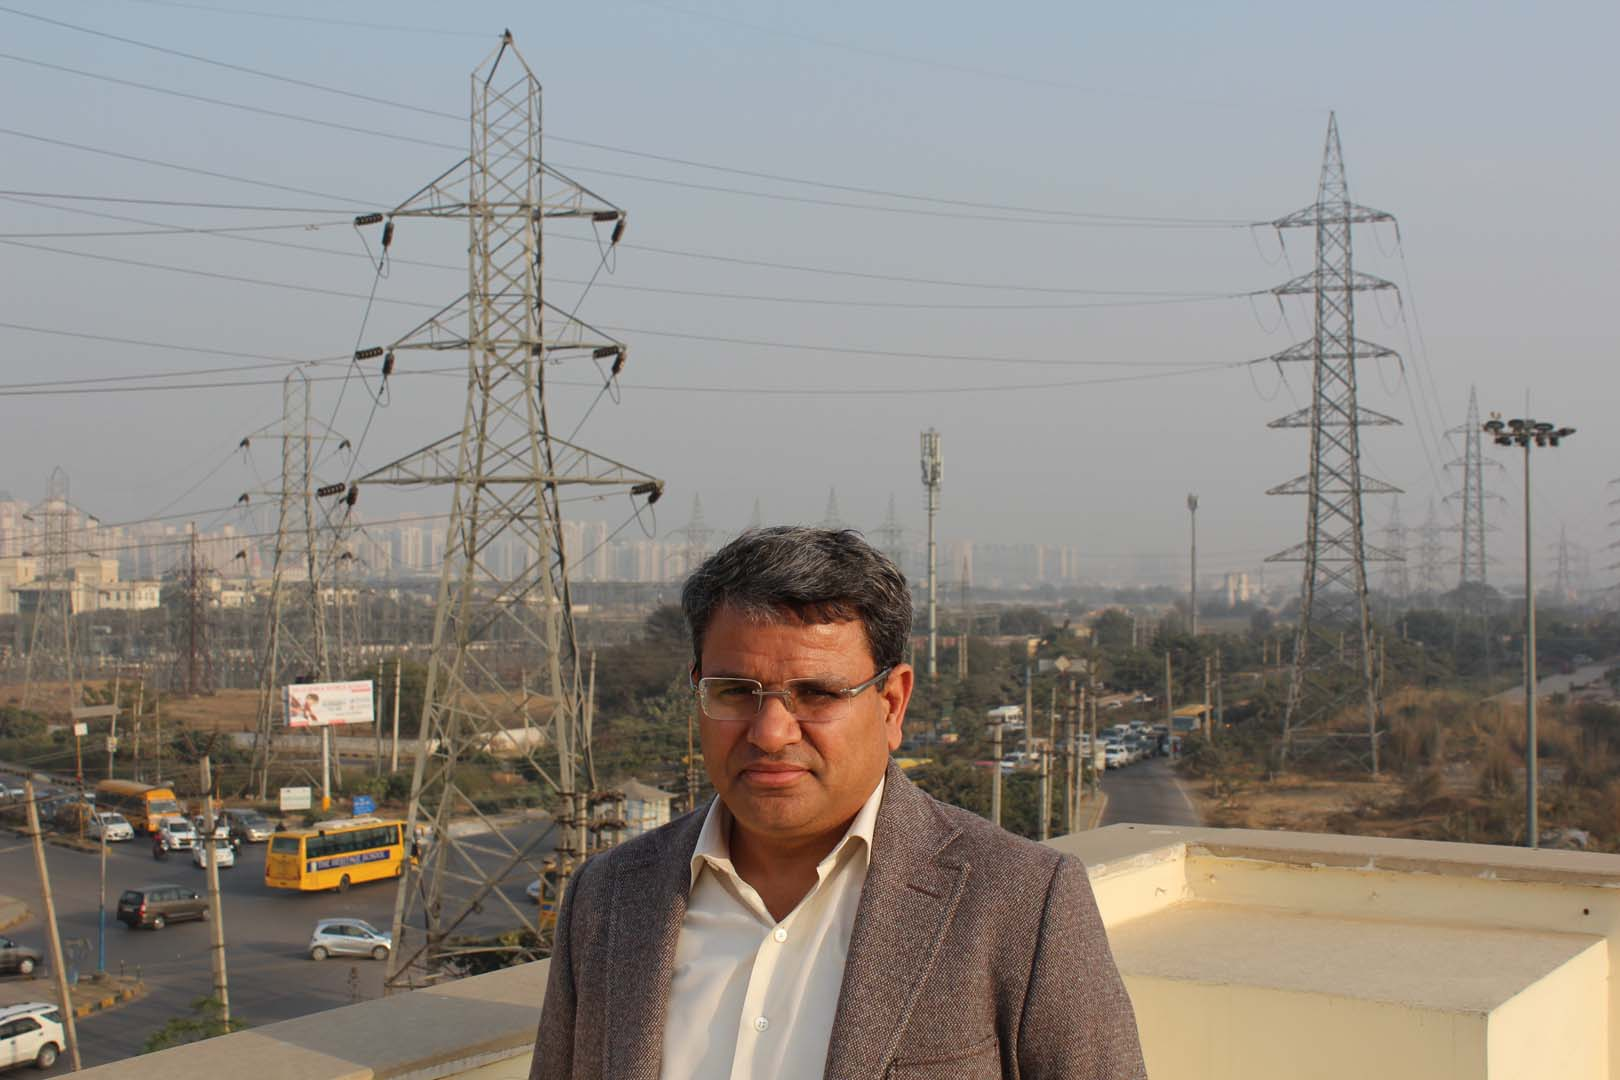 Manoj Kumar Upadhyay, the founder, chairman and managing director of ACME group, at the company offices in Gurgaon, New Delhi. Credit: Tom Kenning.